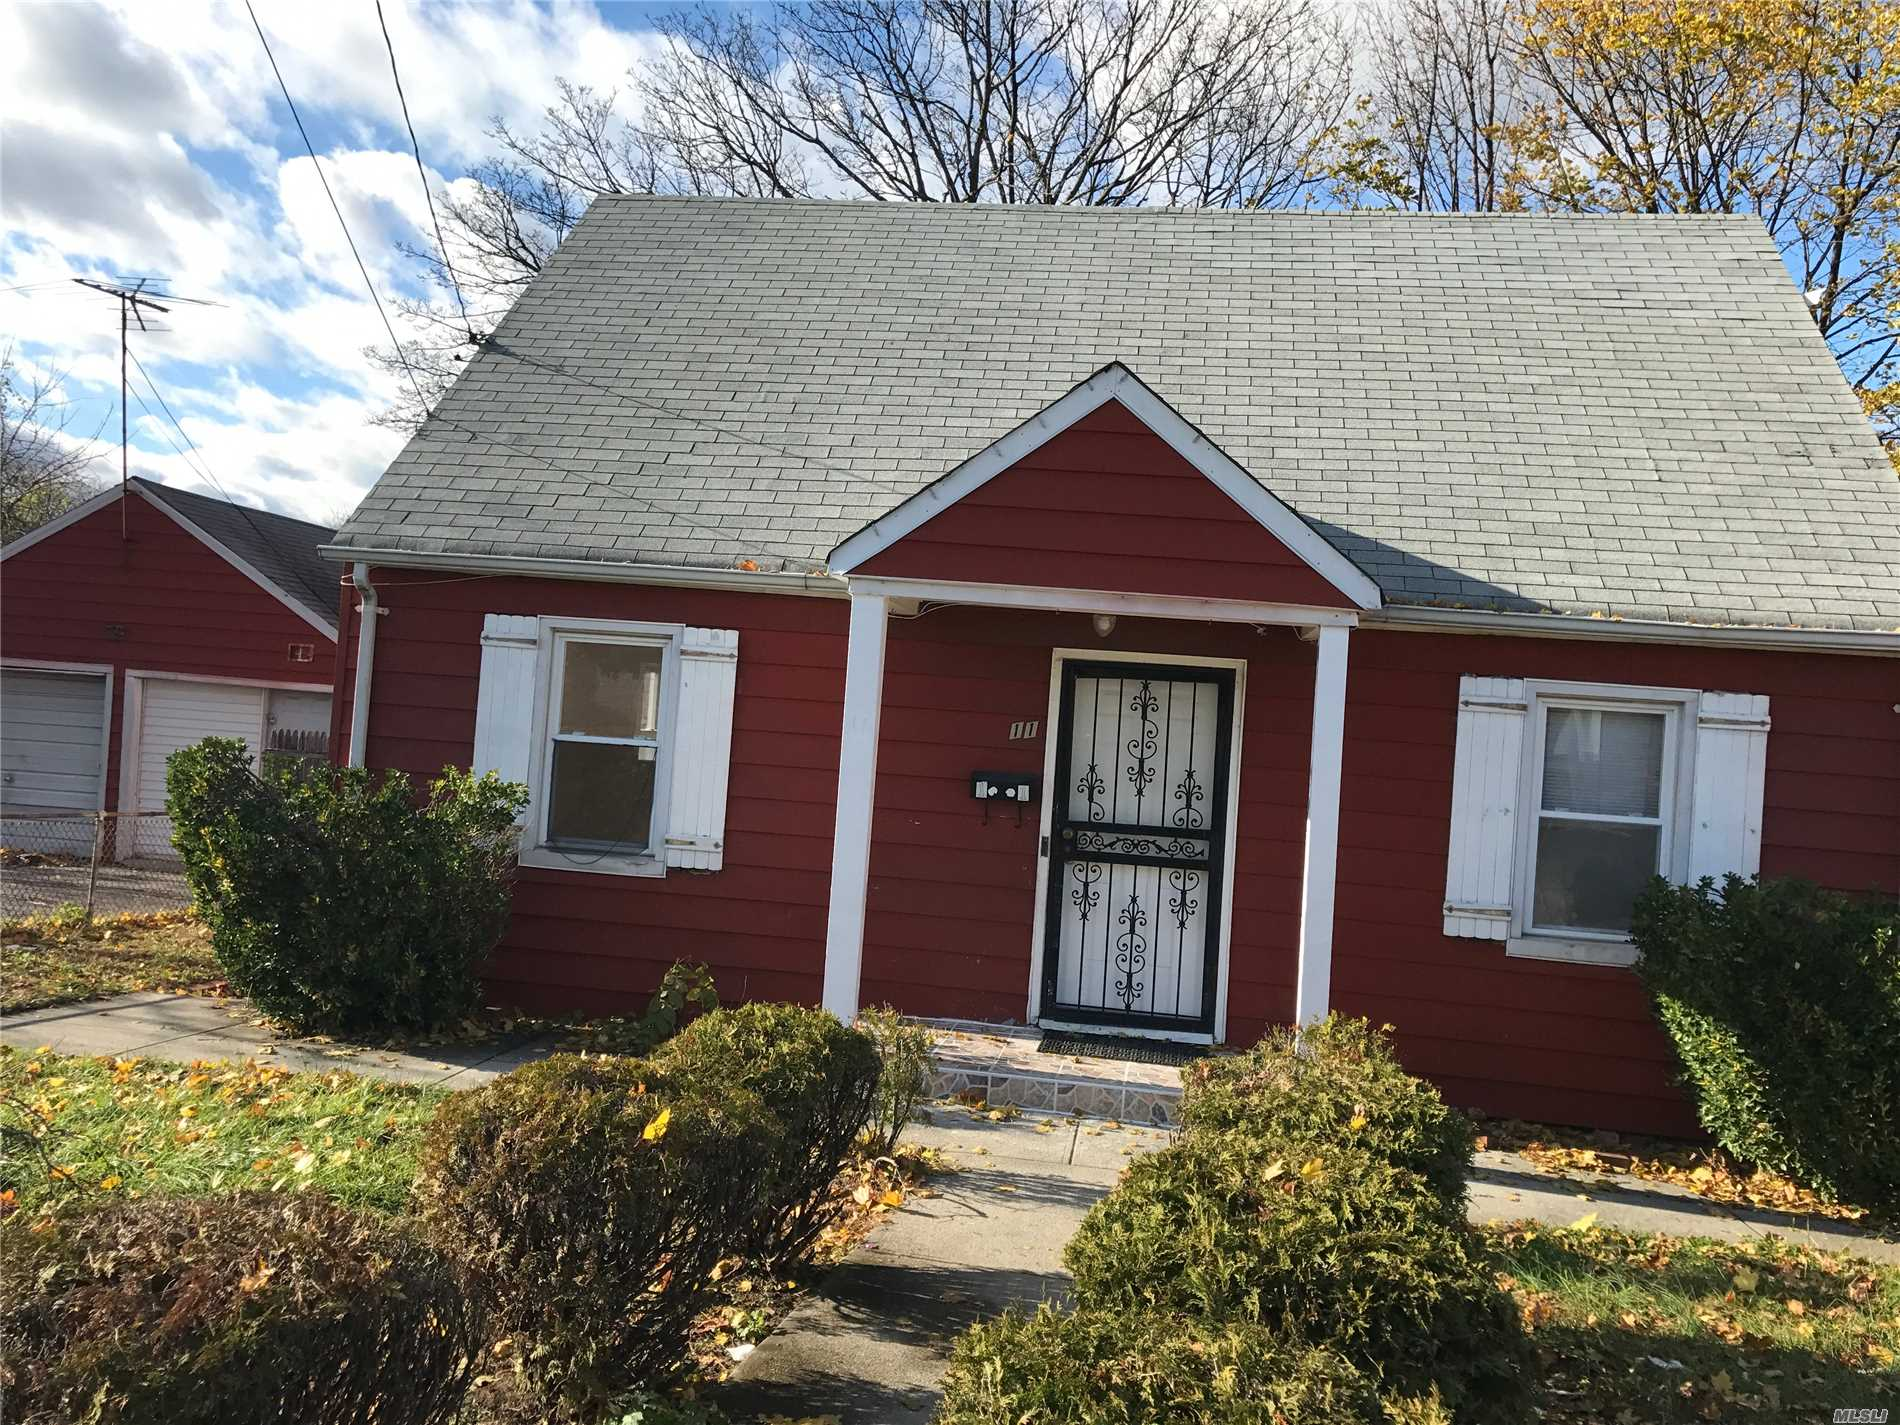 Cape Style House. The First Floor Includes Living Room, New Kitchen W/ Granite Countertop, New Floors, Full Bath And Two Bedrooms. Second Floor Includes Two Bedrooms With Large Closet, New Carpet And New Bathroom. The Basement Fully Finished With Ose.